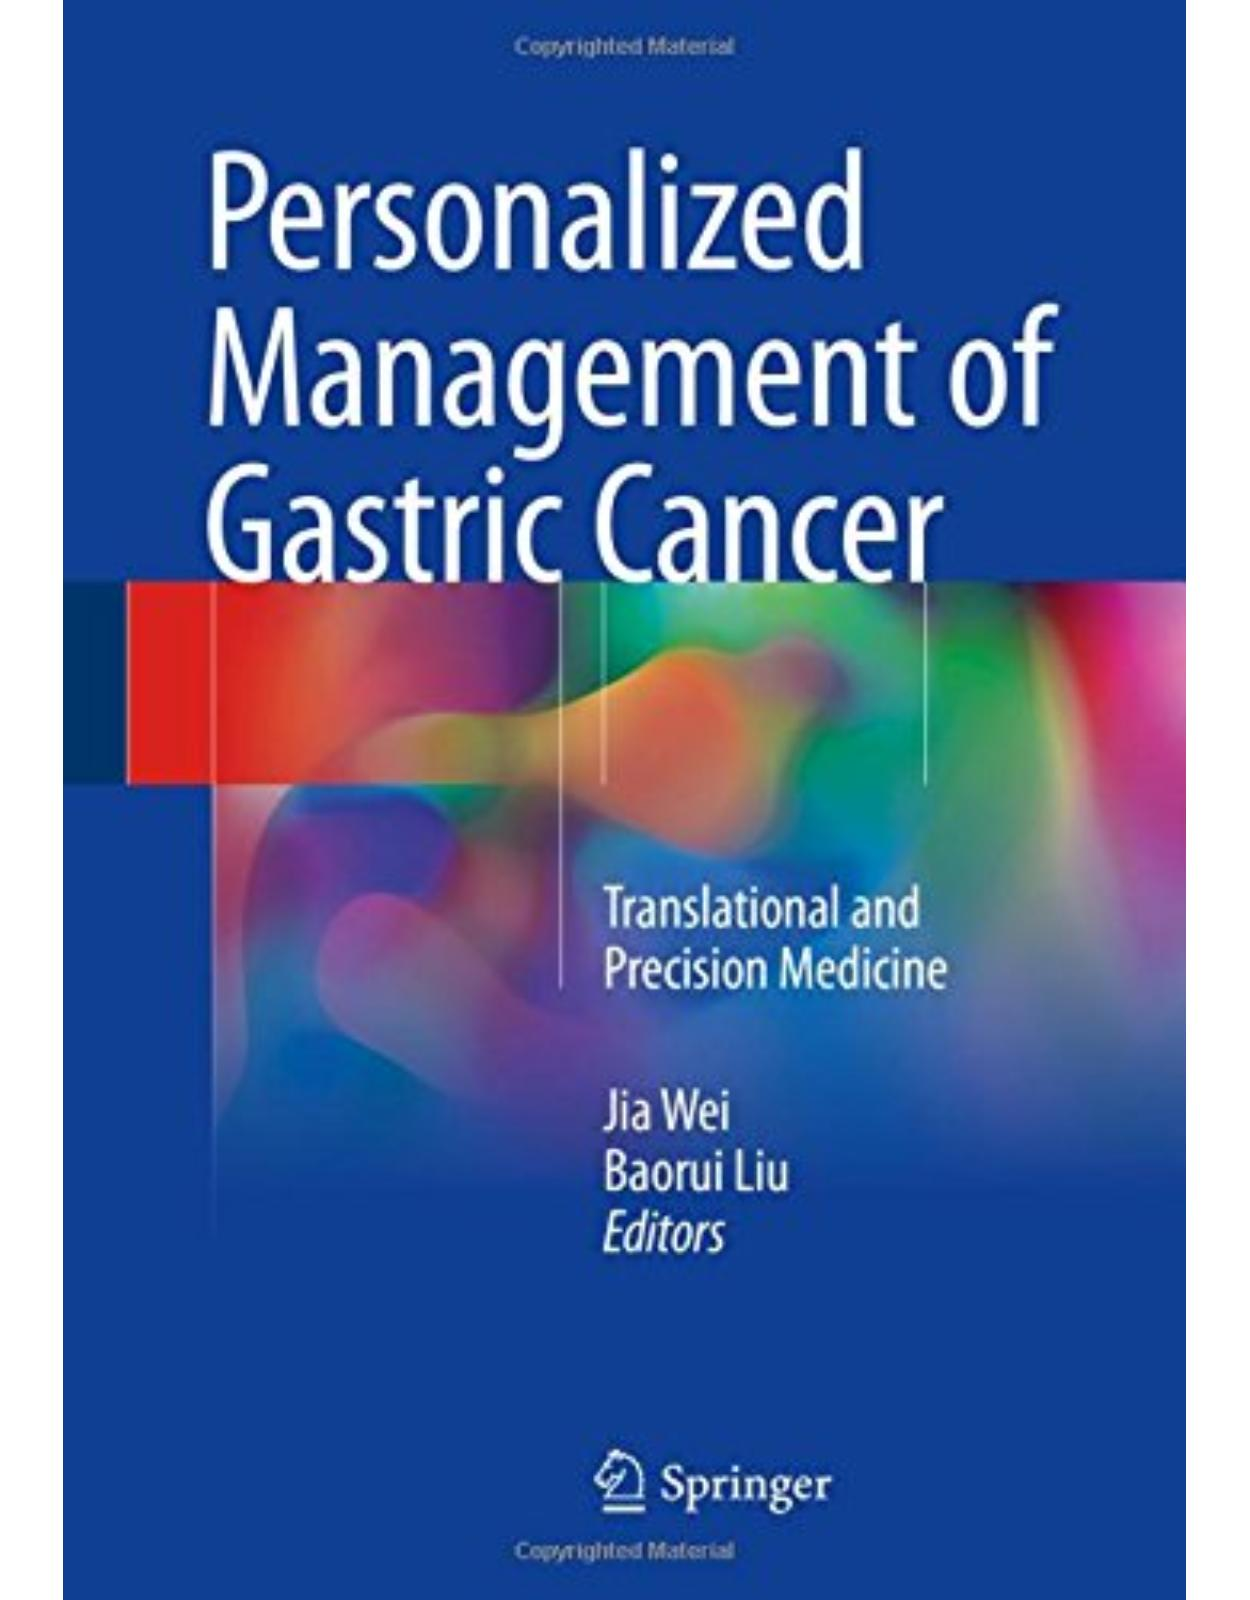 Personalized Management of Gastric Cancer: Translational and Precision Medicine